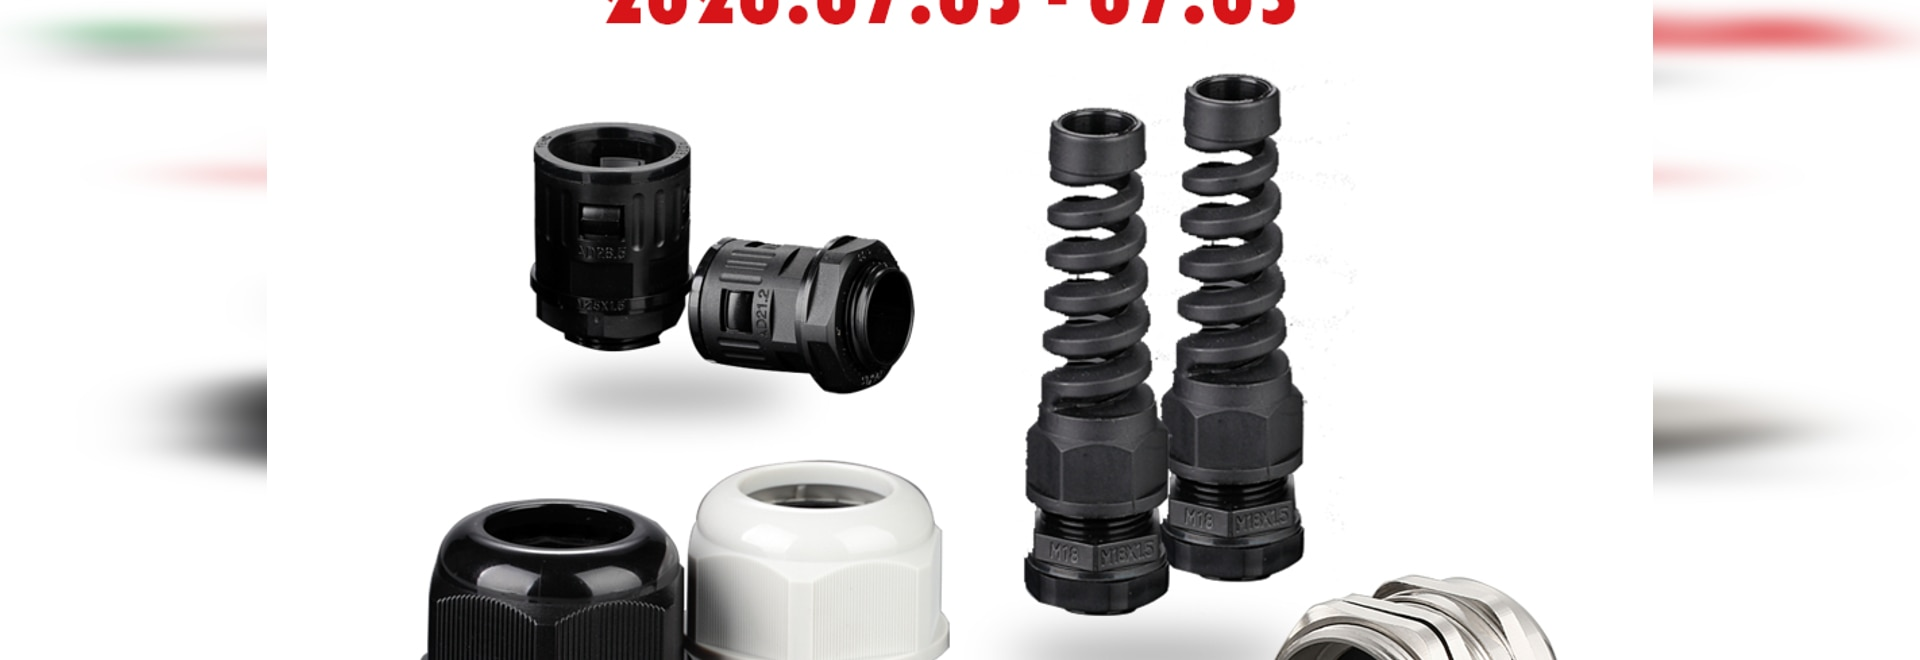 UL CABLE GLAND